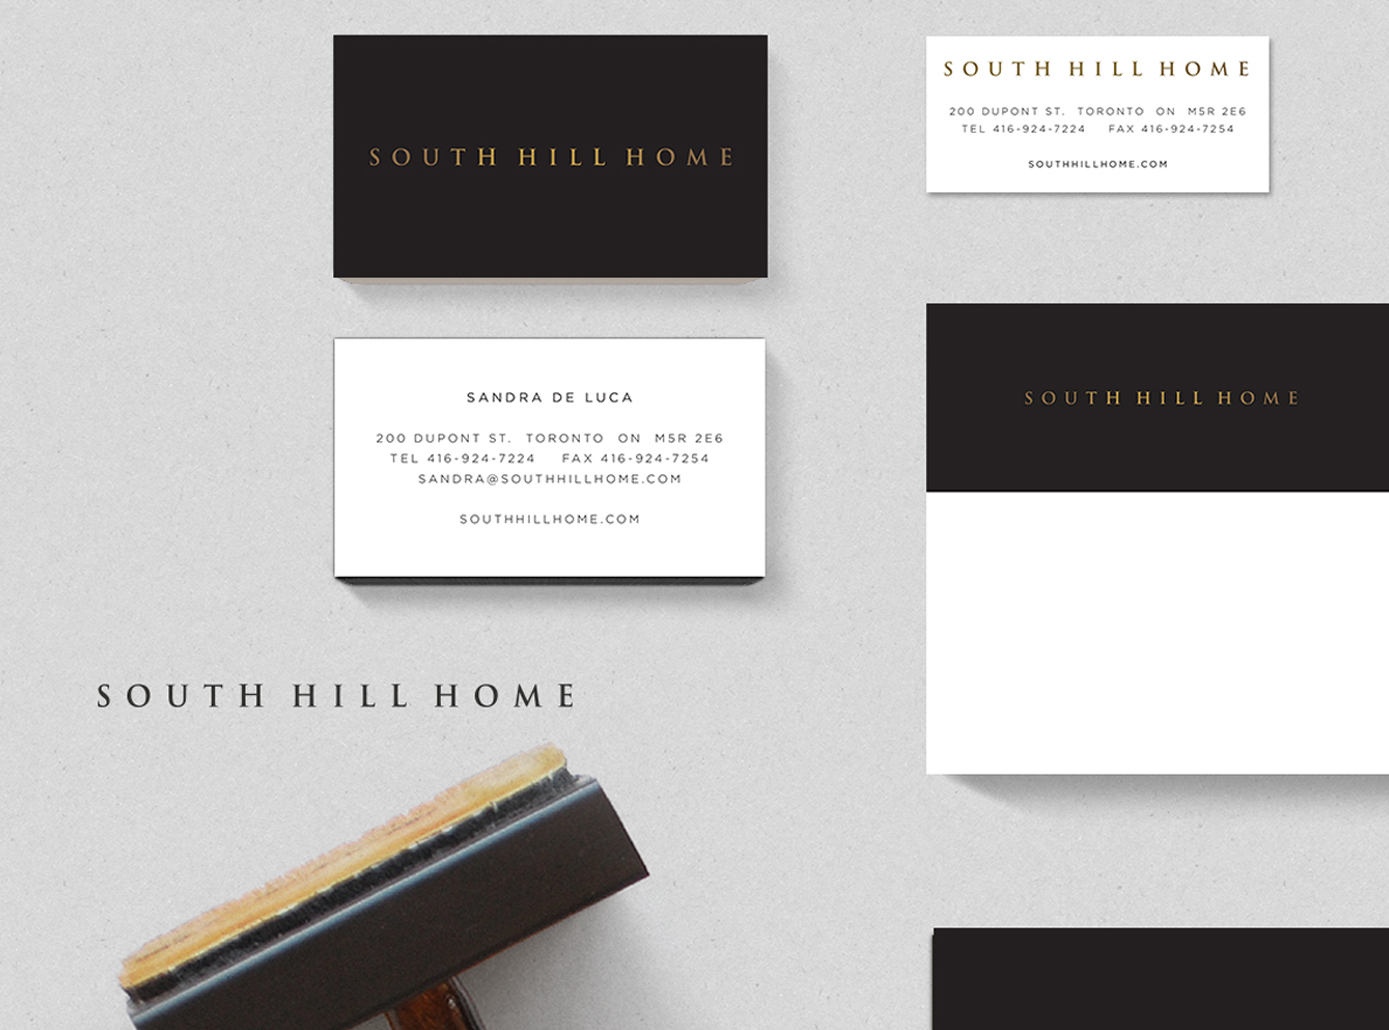 South Hill Home | Rebrand